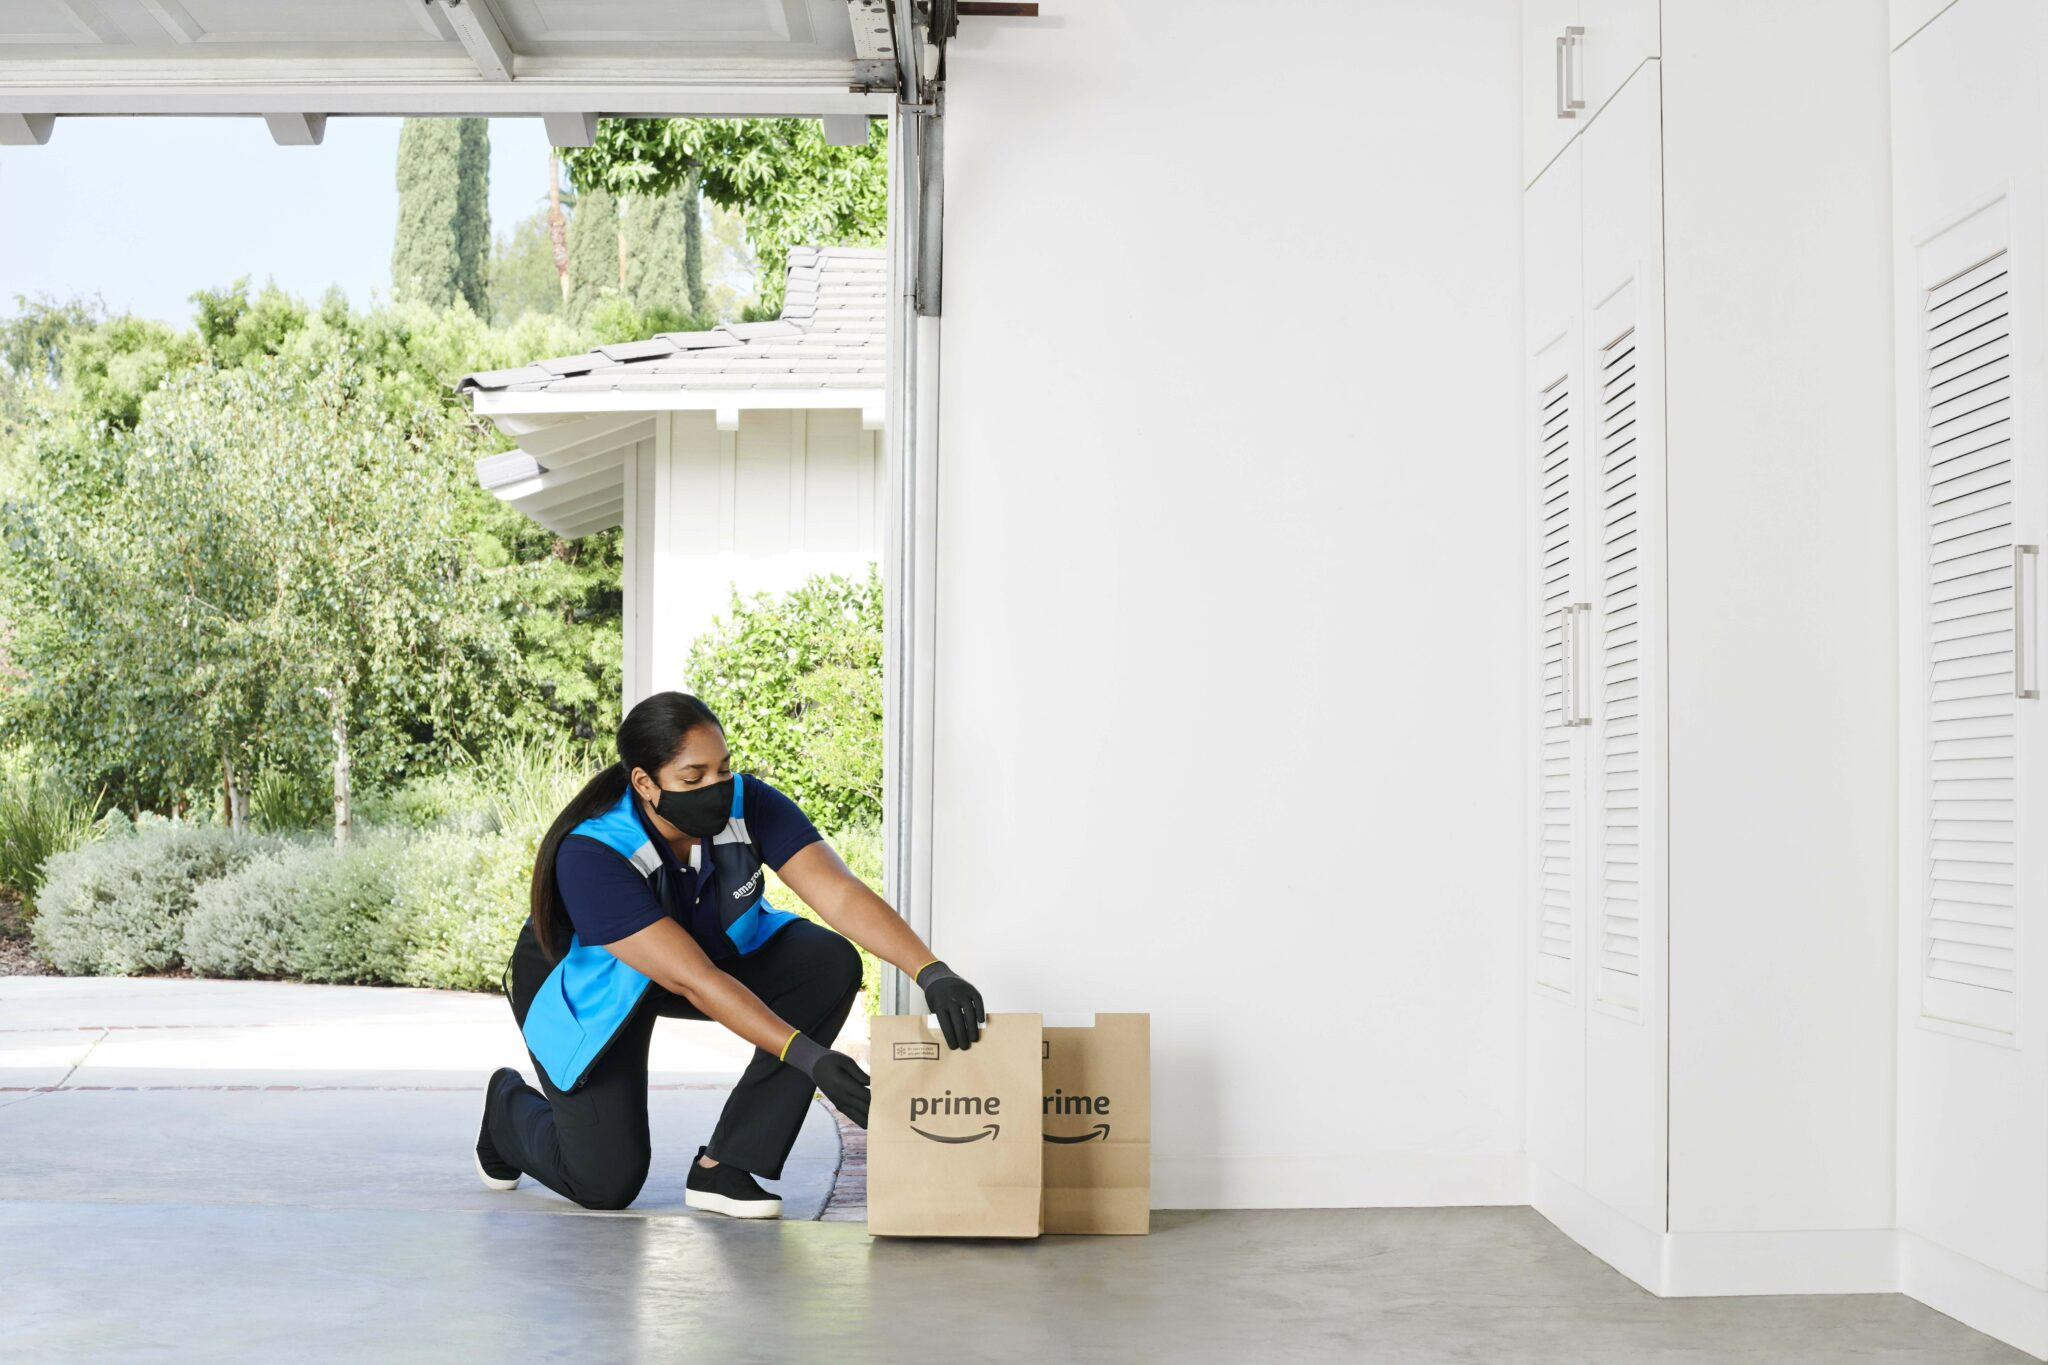 Amazon expands service that delivers groceries inside your garage